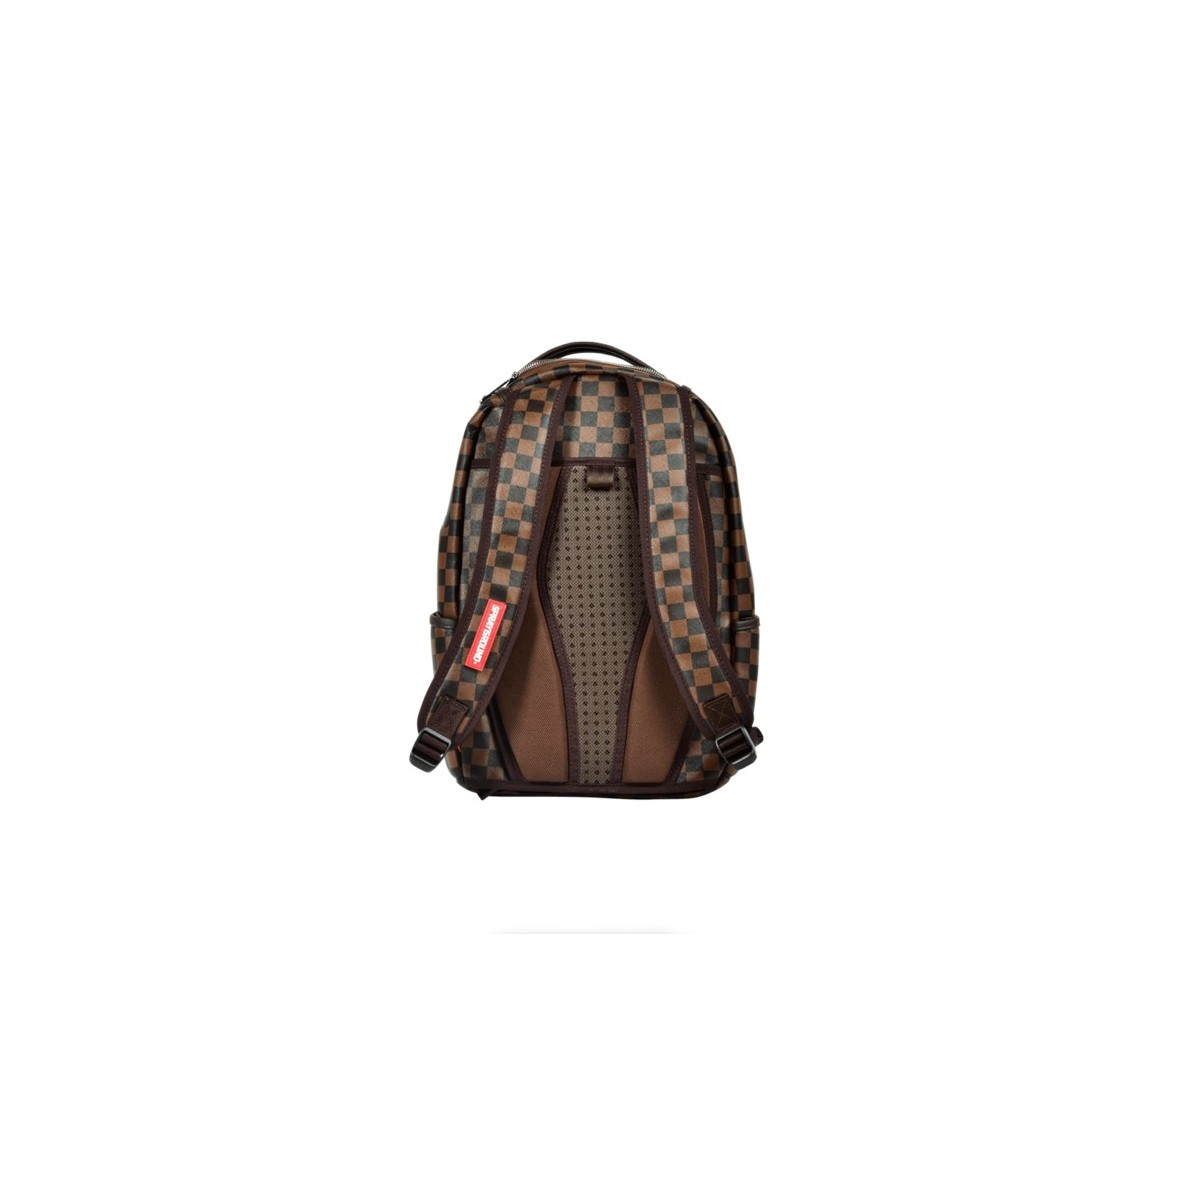 Borsa - Shark in paris brown zip oro